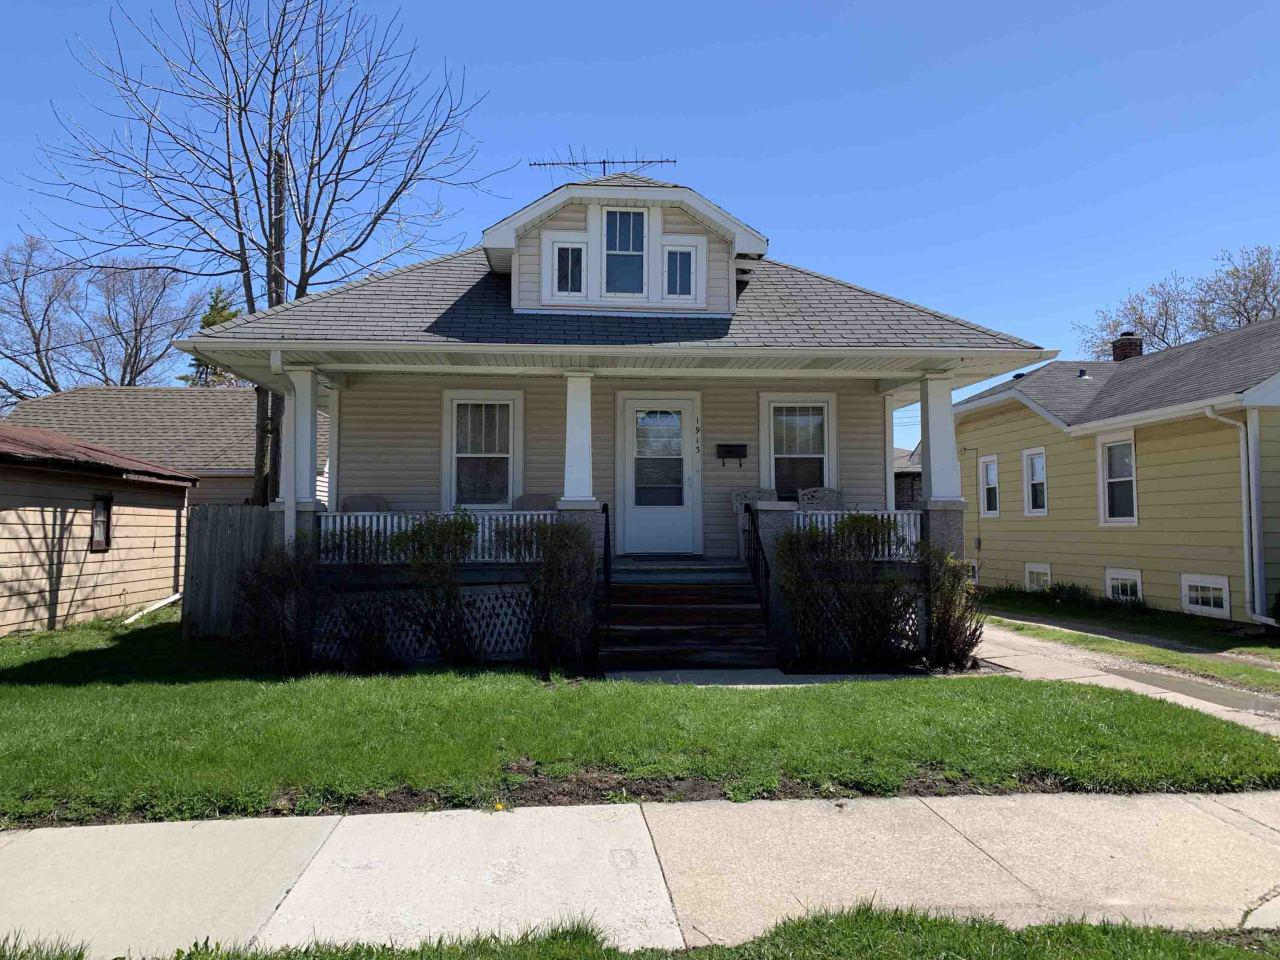 West Racine 2 bedroom bungalow. Very solid built one family owned ''Sears Catalog'' home.  9' Ceilings. Gravel driveway and 2 car garage. NEW furnace and NEW water heater. Close to shopping and dining options.